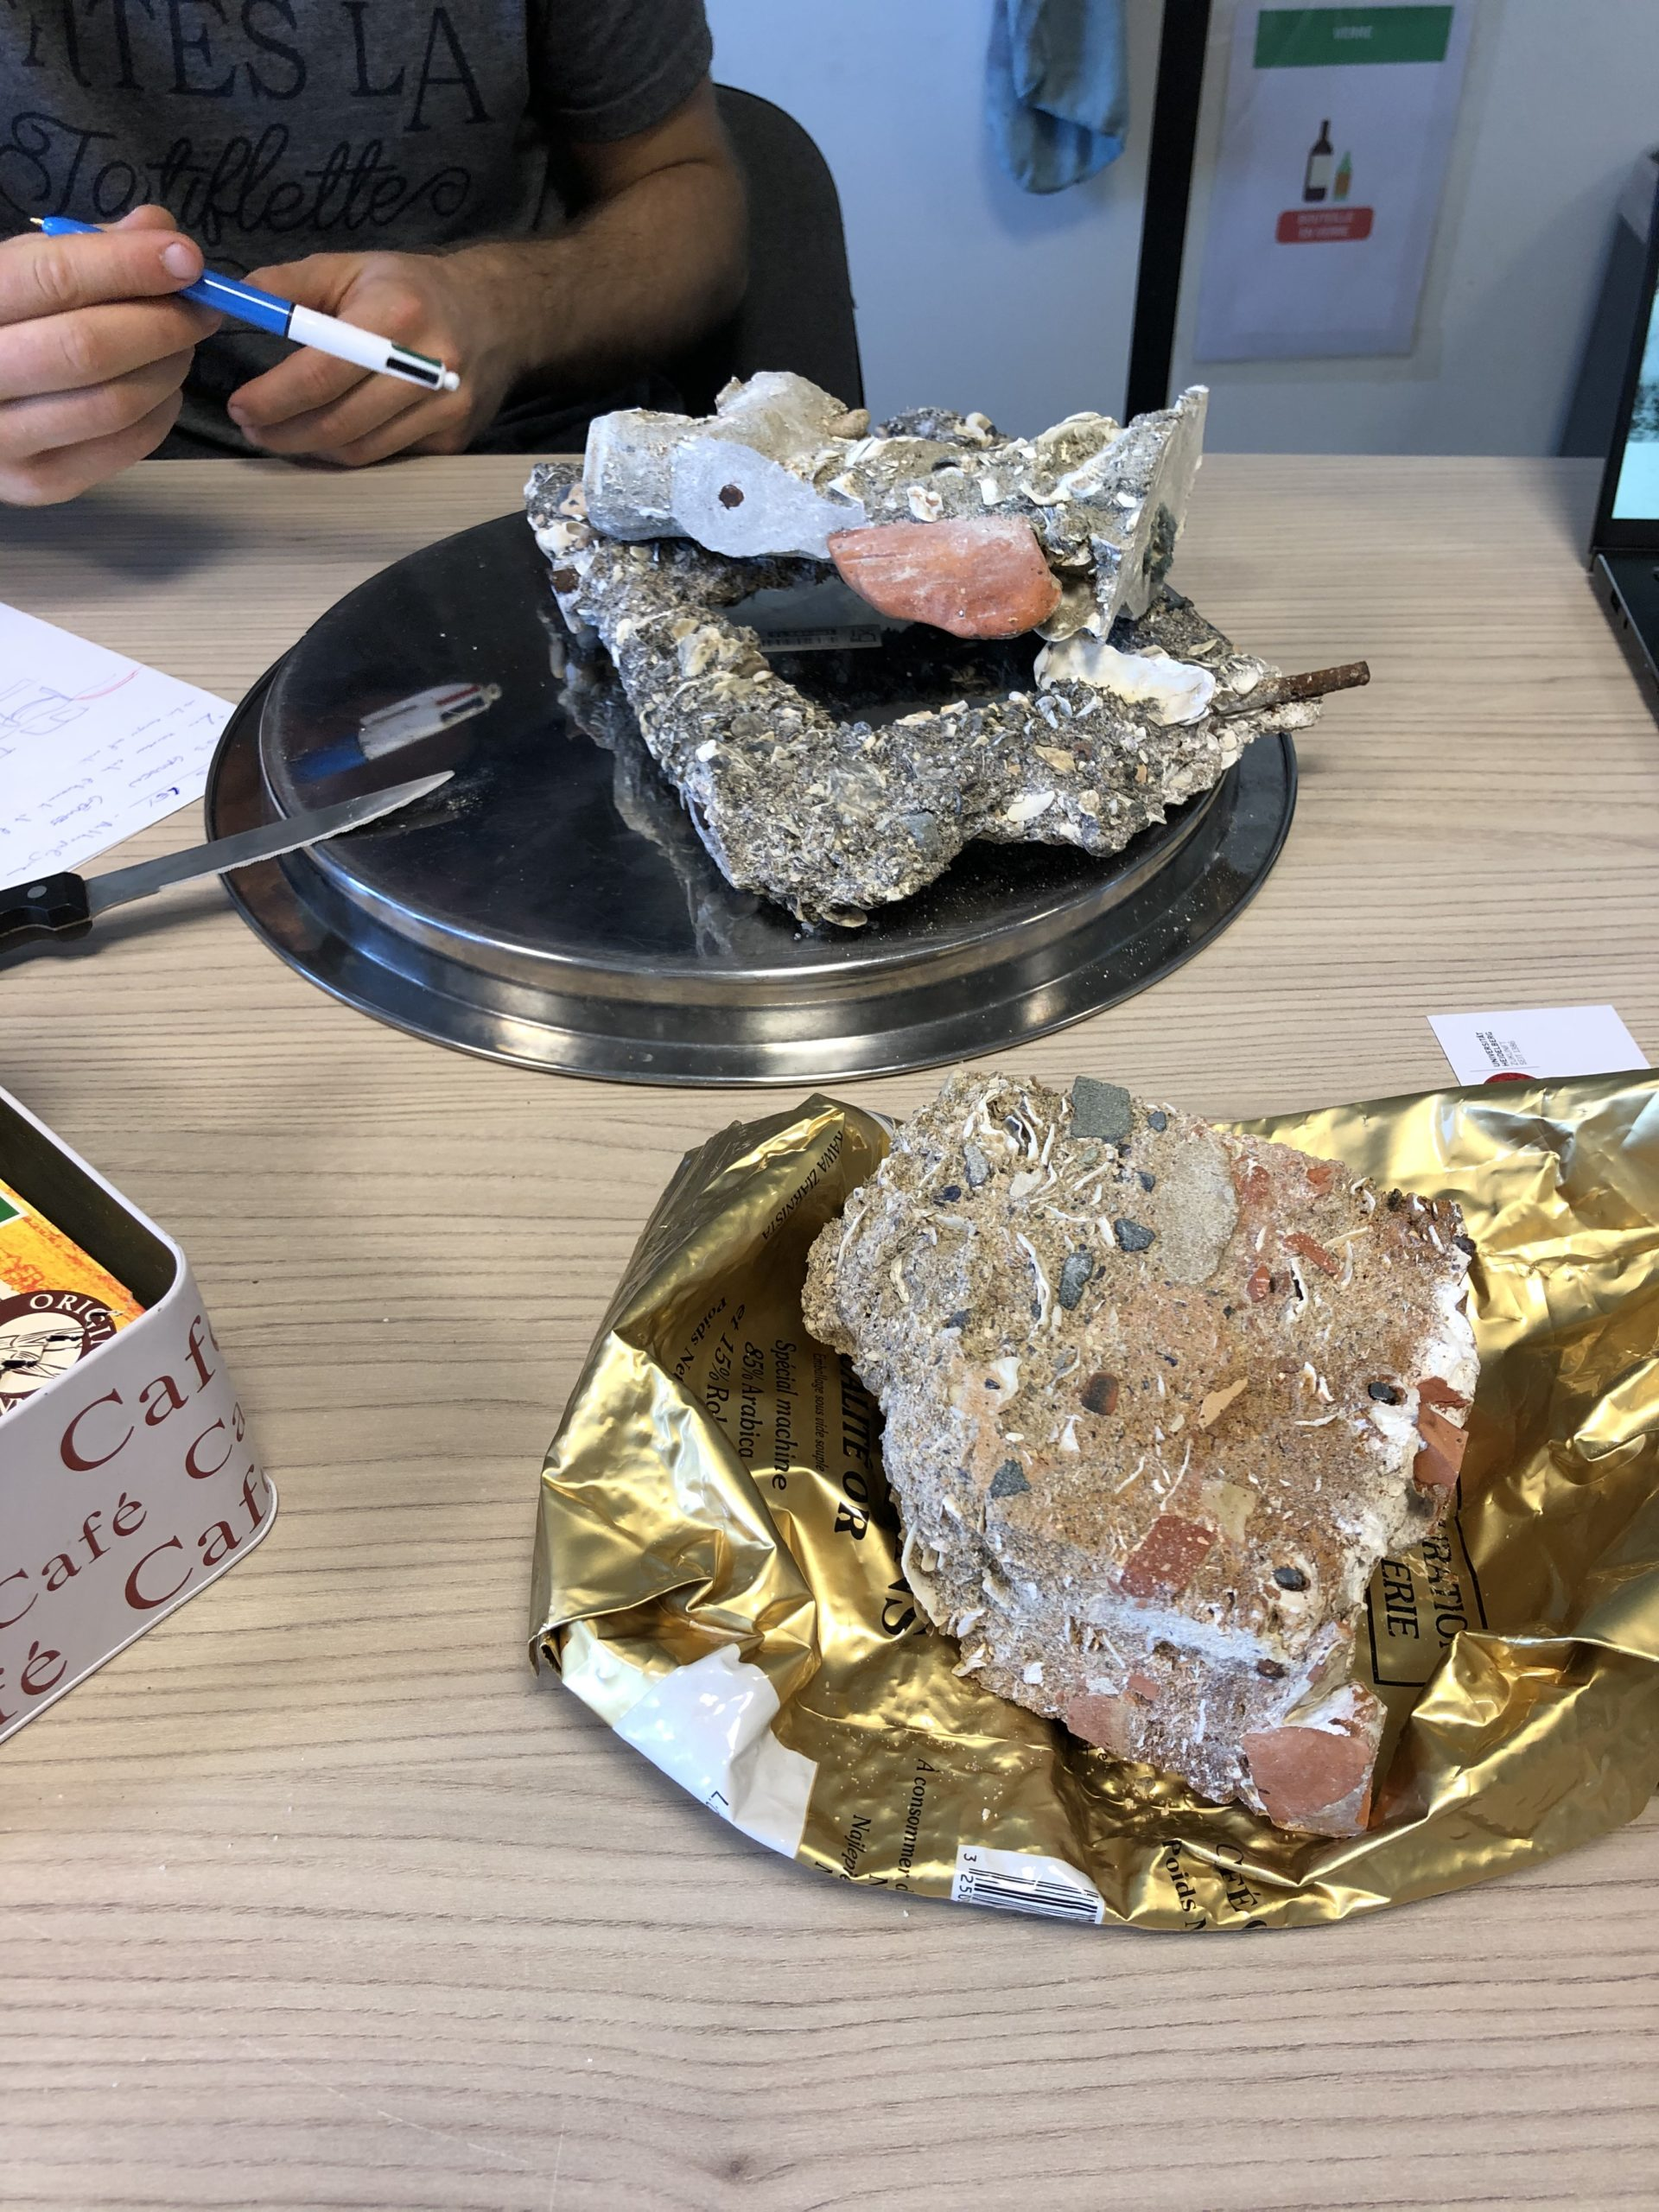 Photograph of concrete and minerals sitting on a table